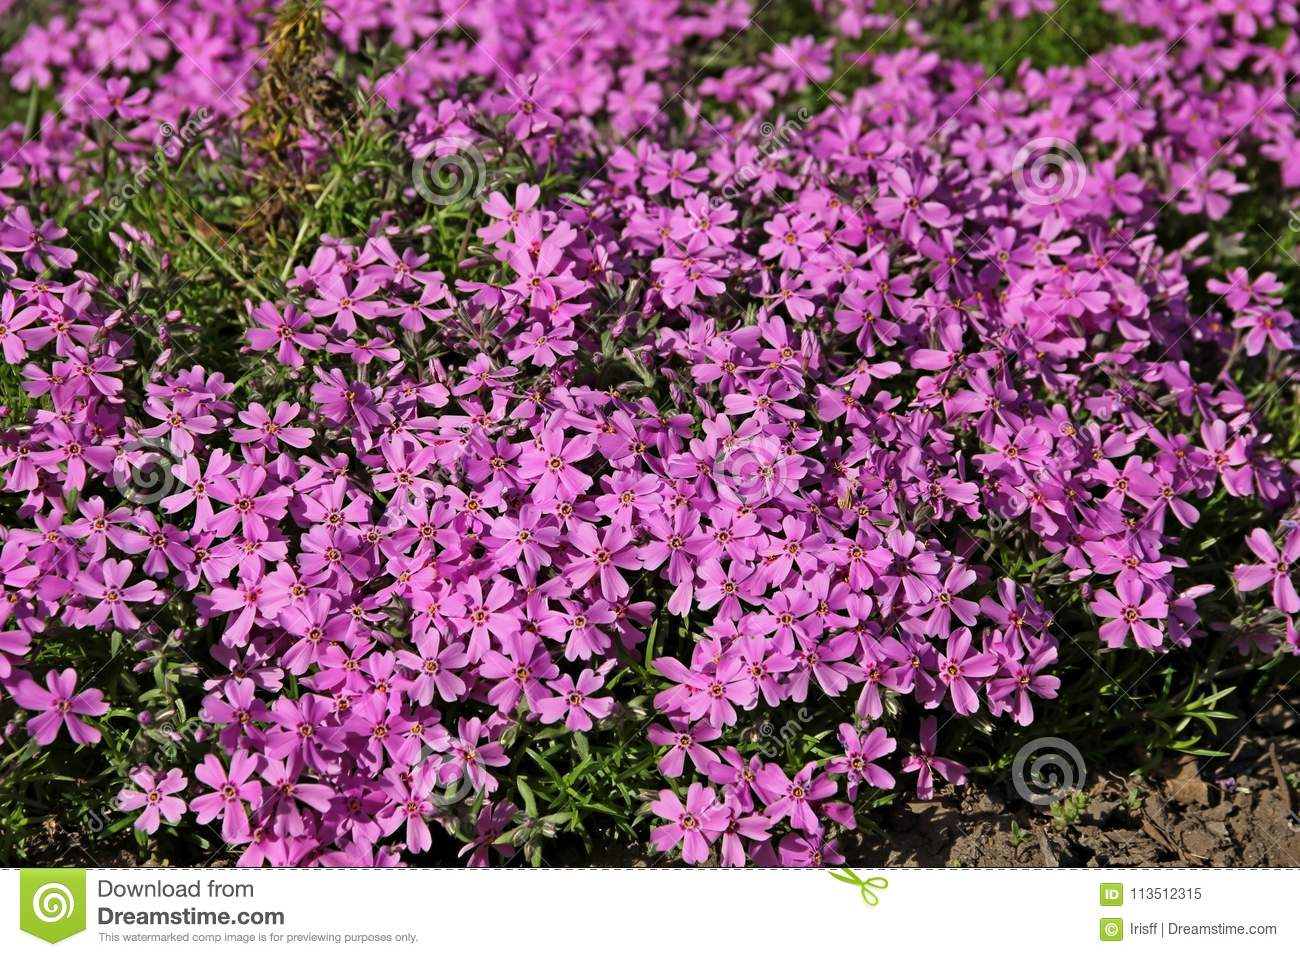 Phlox Groundcover Stock Image Image Of Colorful Bloom 113512315